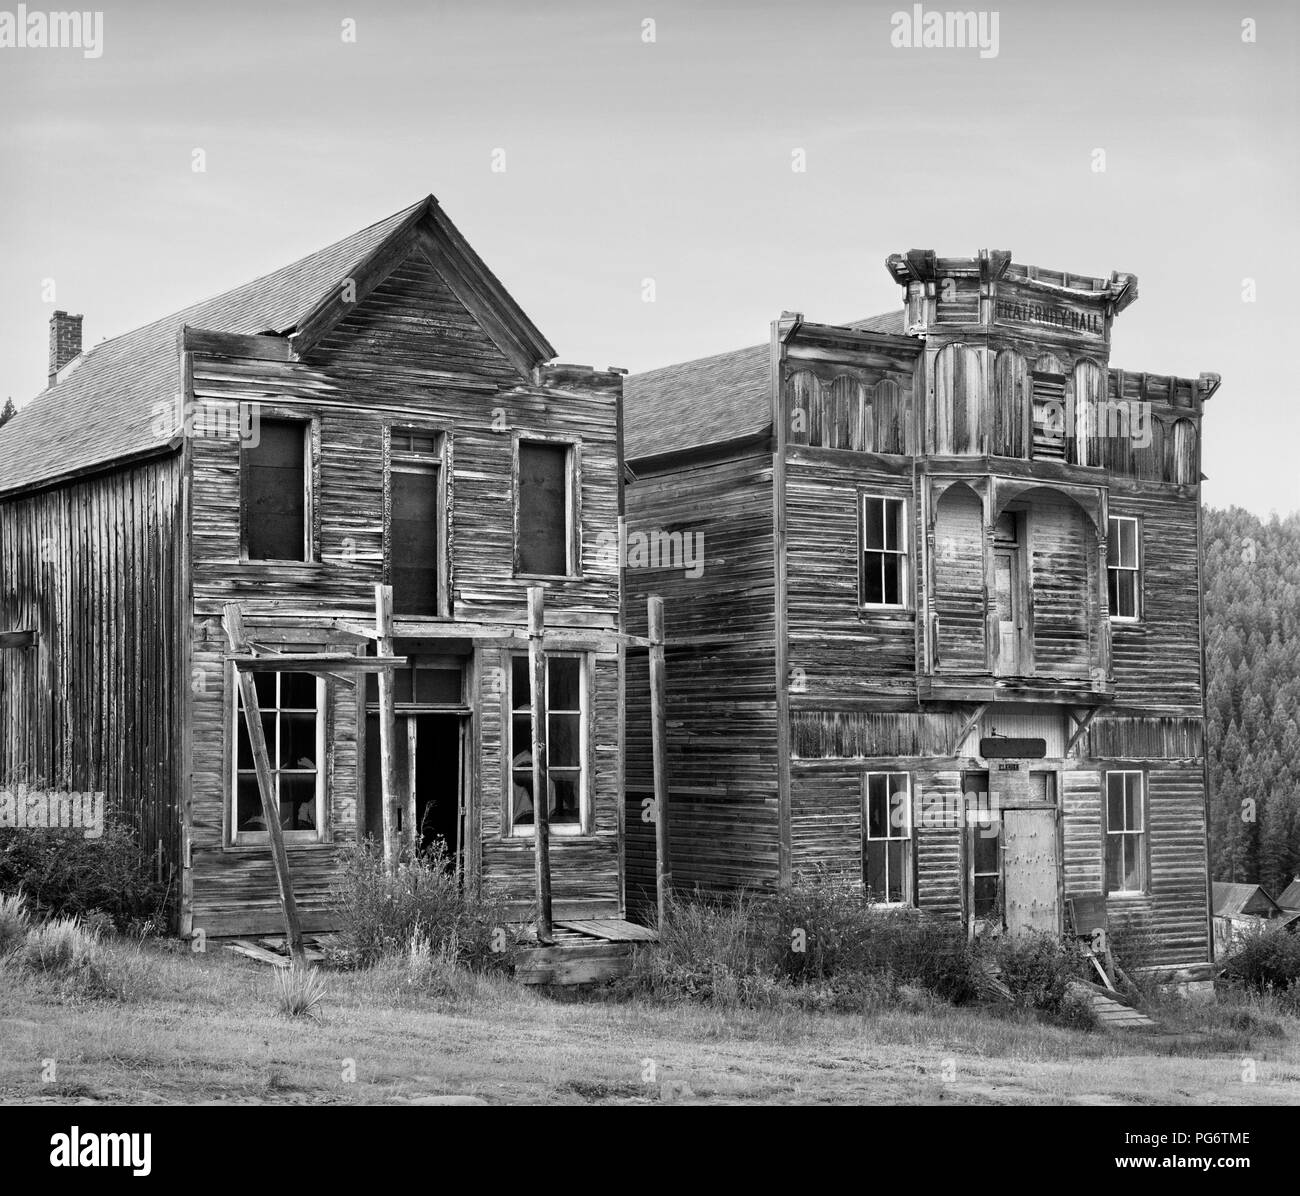 Gillian Hall and Fraternity Hall in Elkhorn ghost town, Montana, the United States. - Stock Image